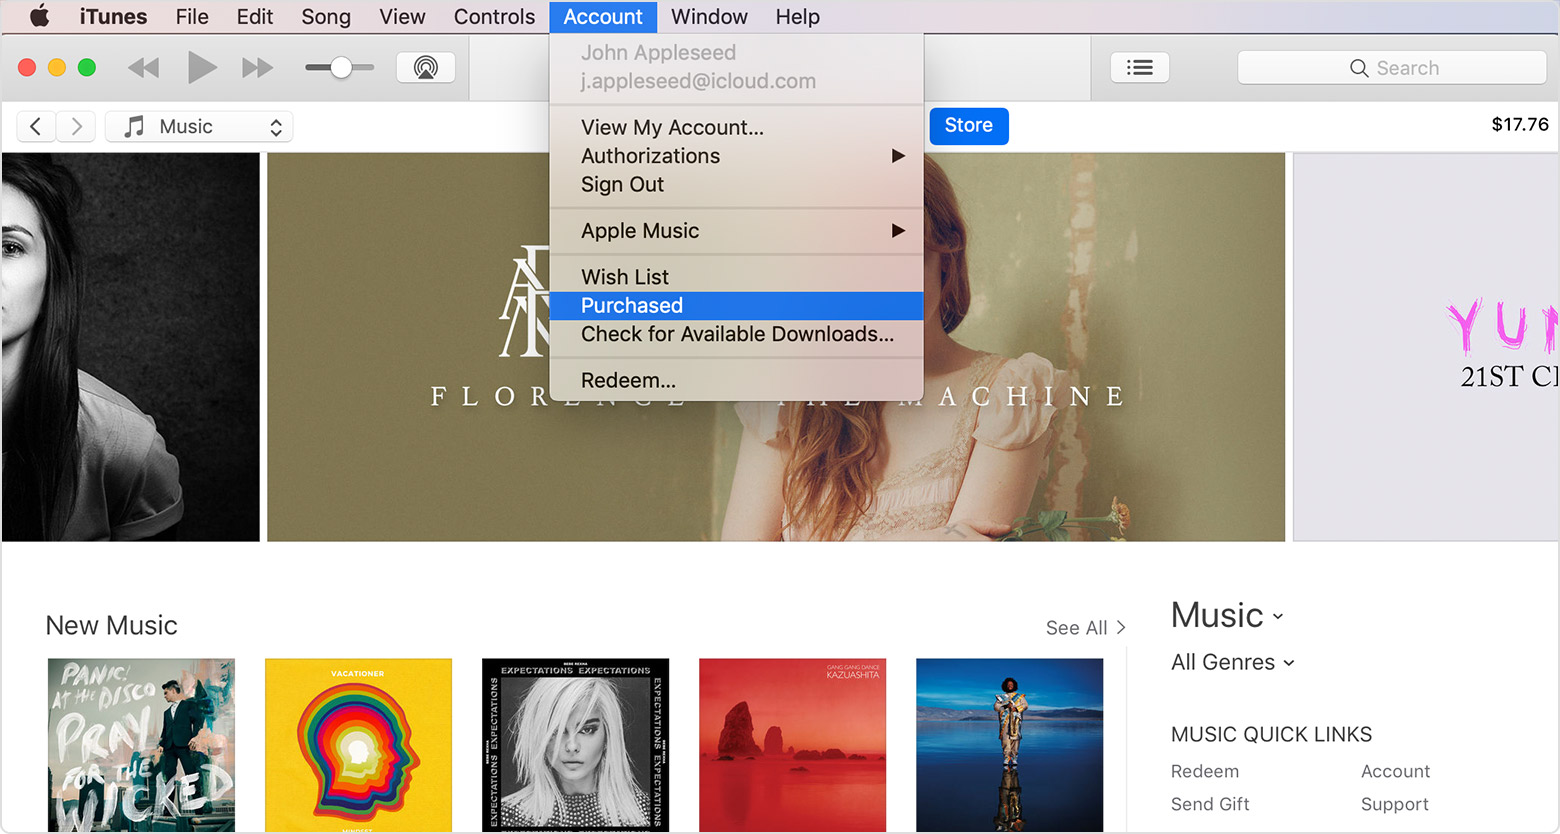 The Account menu in iTunes, with Purchased selected.